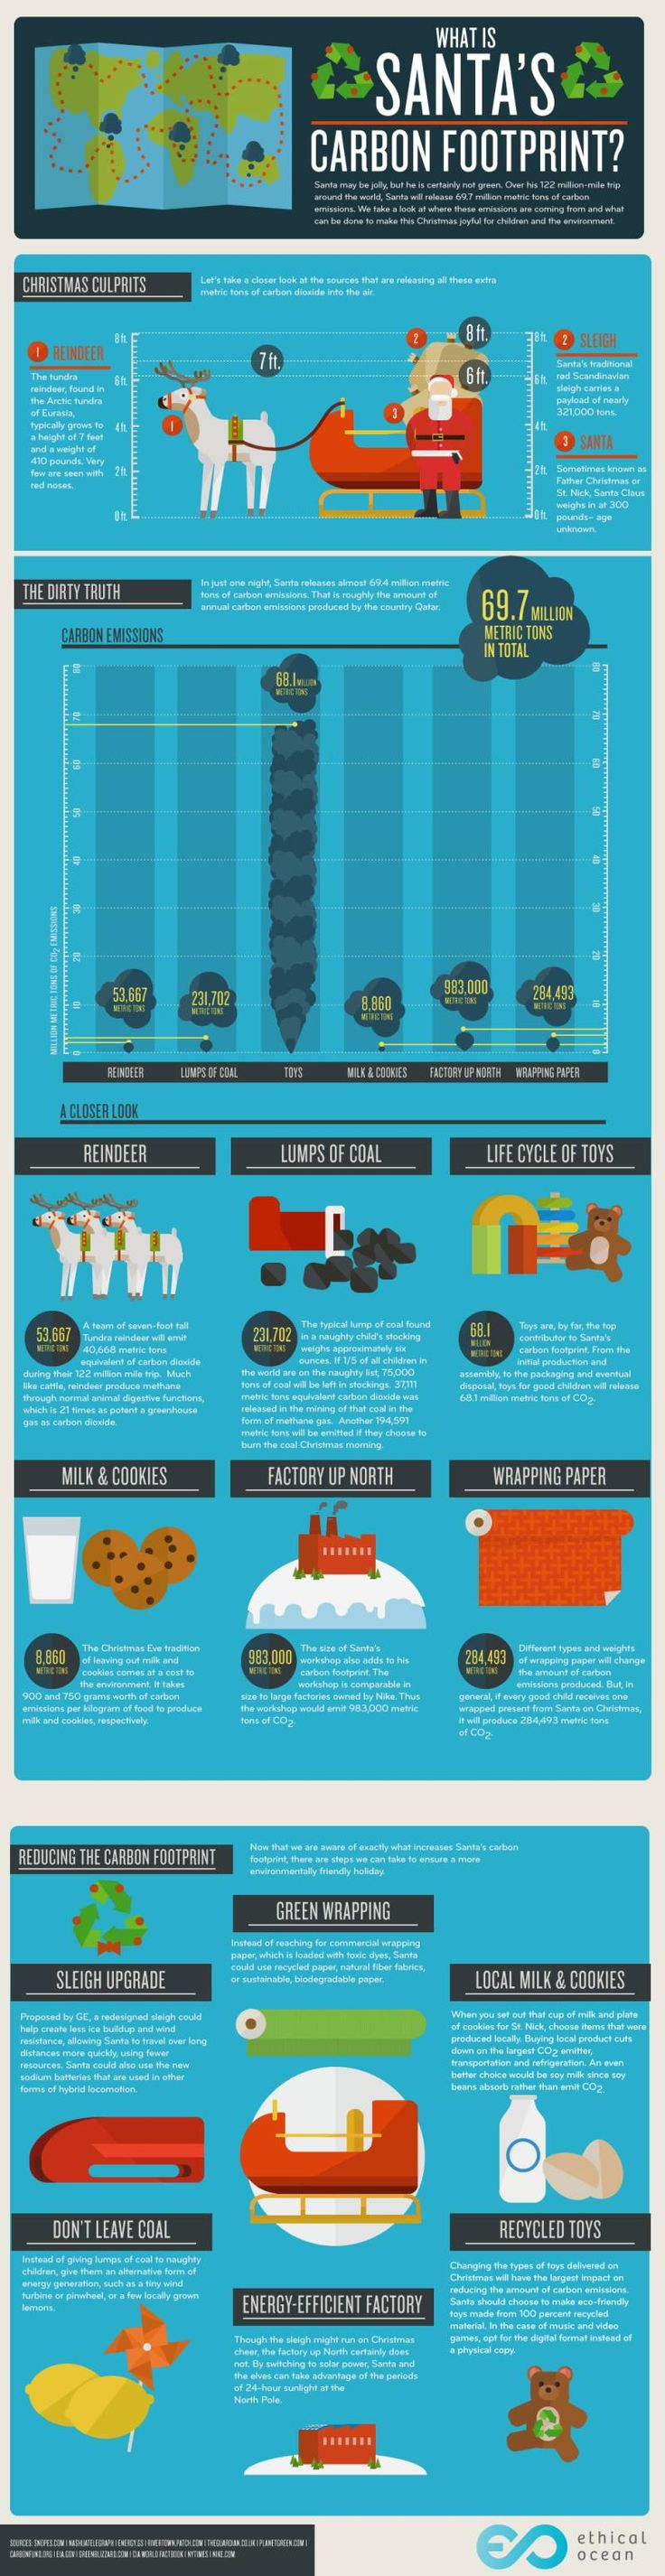 What is Santa's Carbon Footprint? | Christmas Fun Facts by Pioneer Settler at http://pioneersettler.com/santas-carbon-footprint/